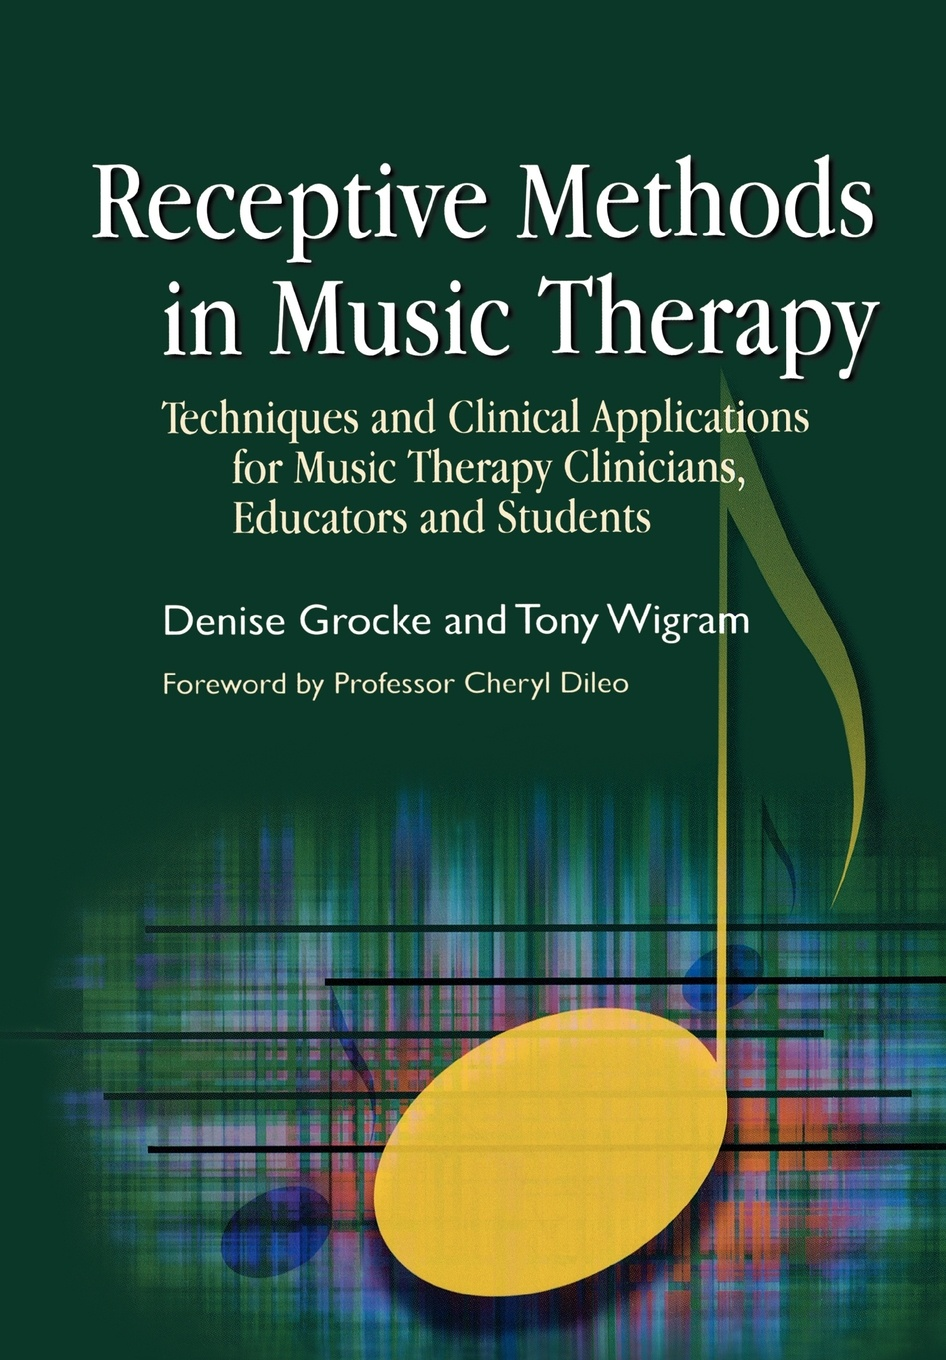 Denise Grocke, Tony Wigram Receptive Methods in Music Therapy. Techniques and Clinical Applications for Music Therapy Clinicians, Educators and Students caroli sergio analytical techniques for clinical chemistry methods and applications